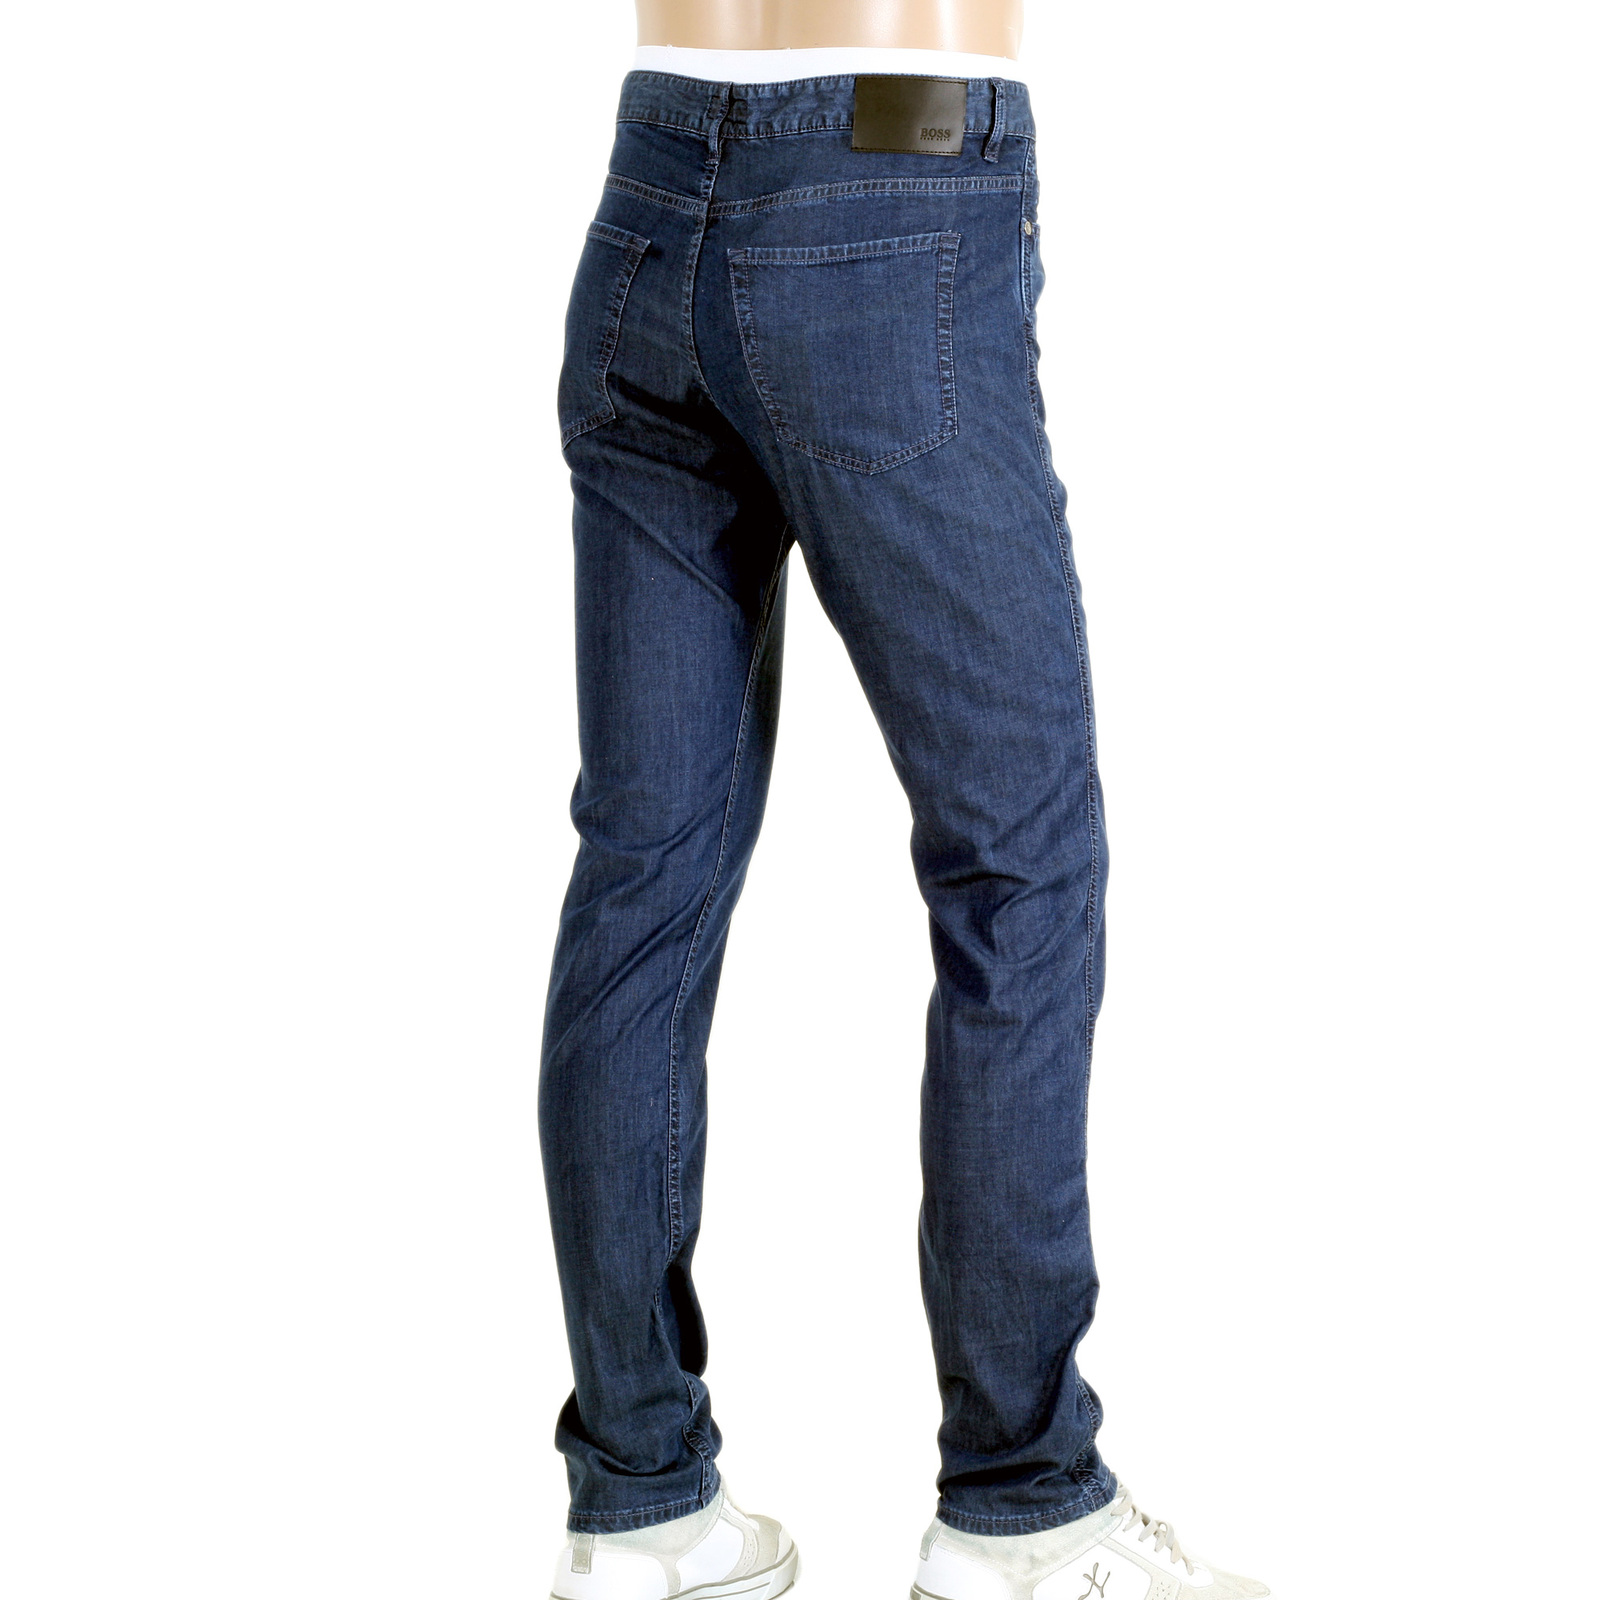 03e8566c8 Shop for Navy Blue Slim Fit Jeans from Hugo Boss Black